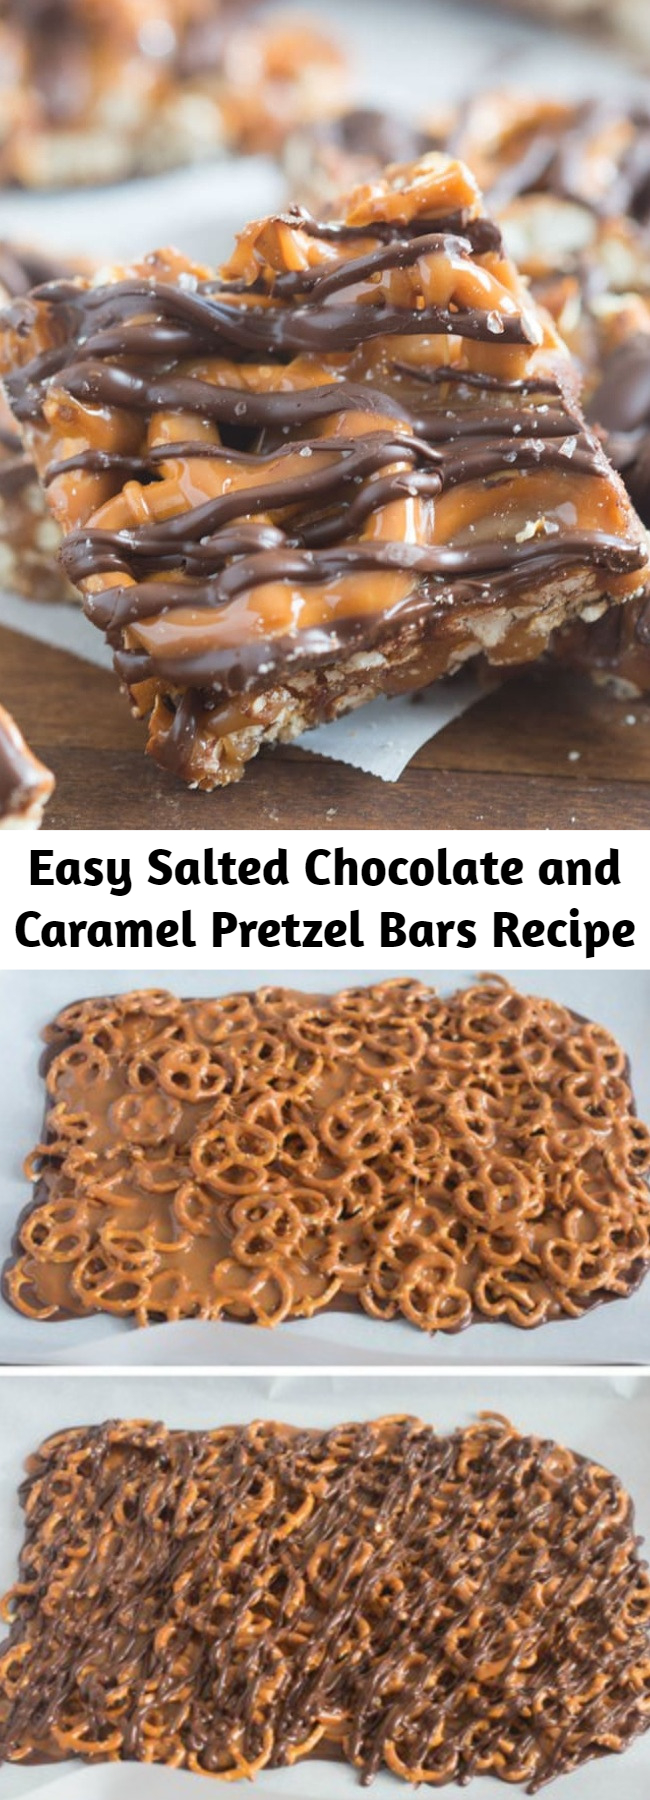 Easy Salted Chocolate and Caramel Pretzel Bars Recipe - These simple, 4-ingredient Salted Chocolate Caramel Pretzel Bars will quickly become your new favorite sweet and salty treat! No bake and no candy thermometer needed.